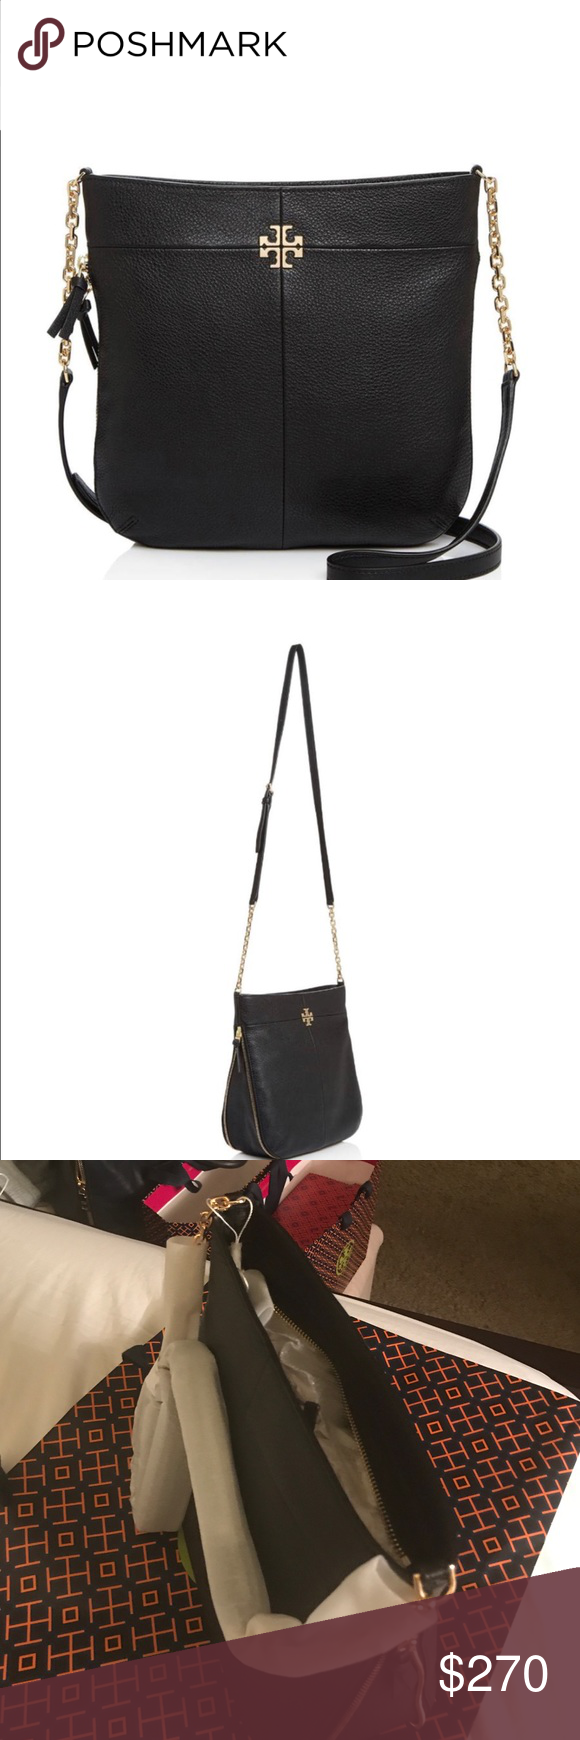 232fa81fa6f Authentic Tory Burch Ivy Crossbody Tory Burch Crossbody Ivy Convertible  leather. NWT. Also available in Bark Tan color. Tory Burch Bags Crossbody  Bags